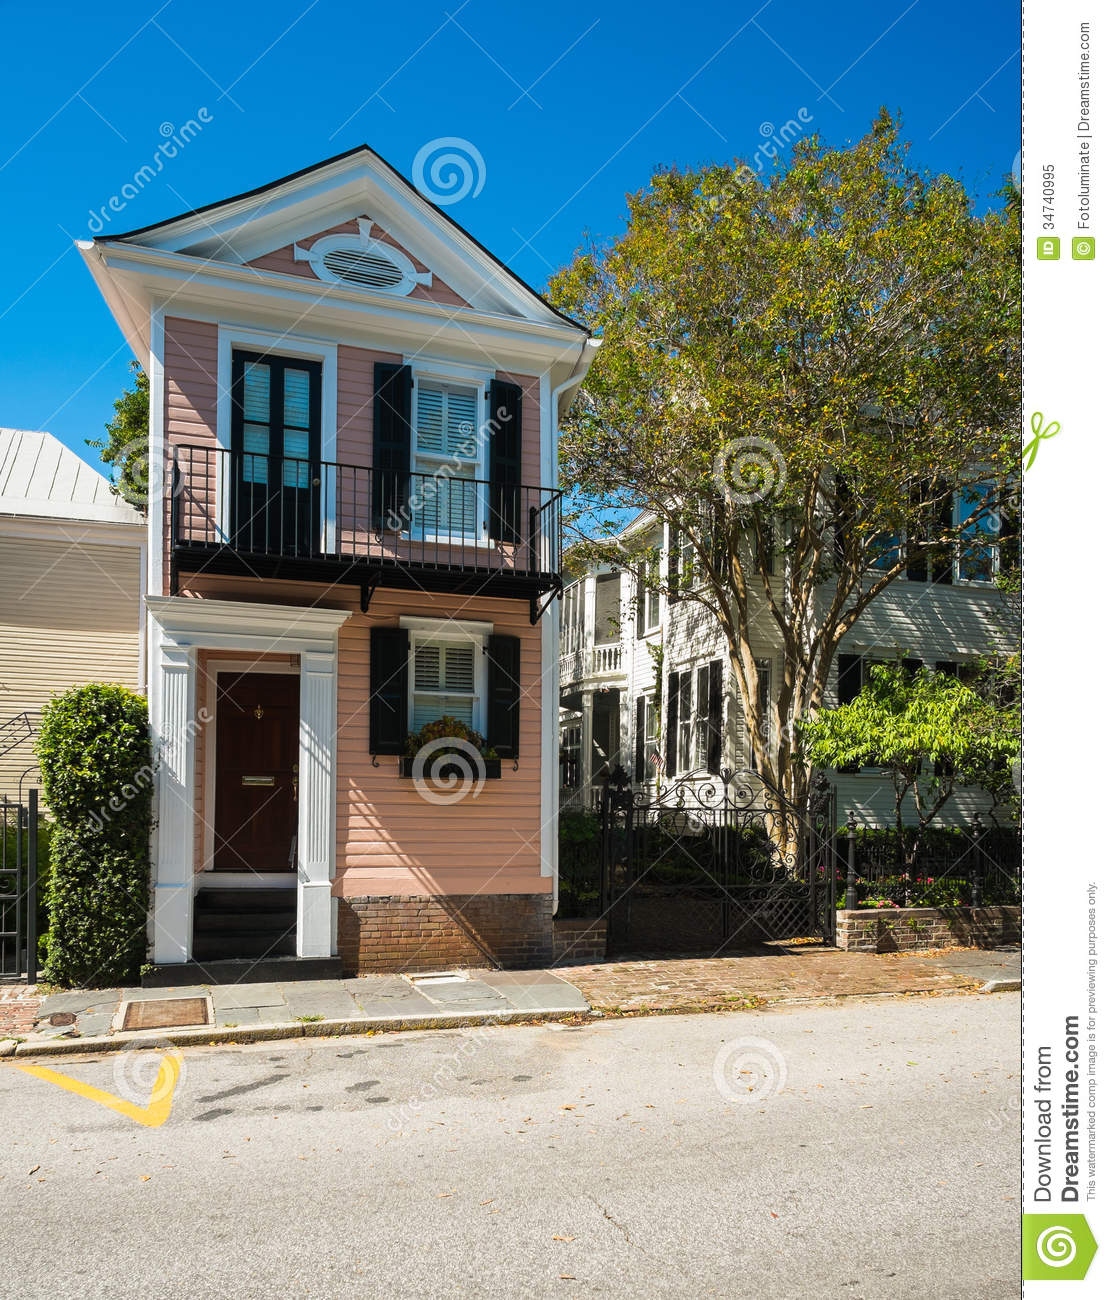 Southern Homes Royalty Free Stock Photo Image 34740995